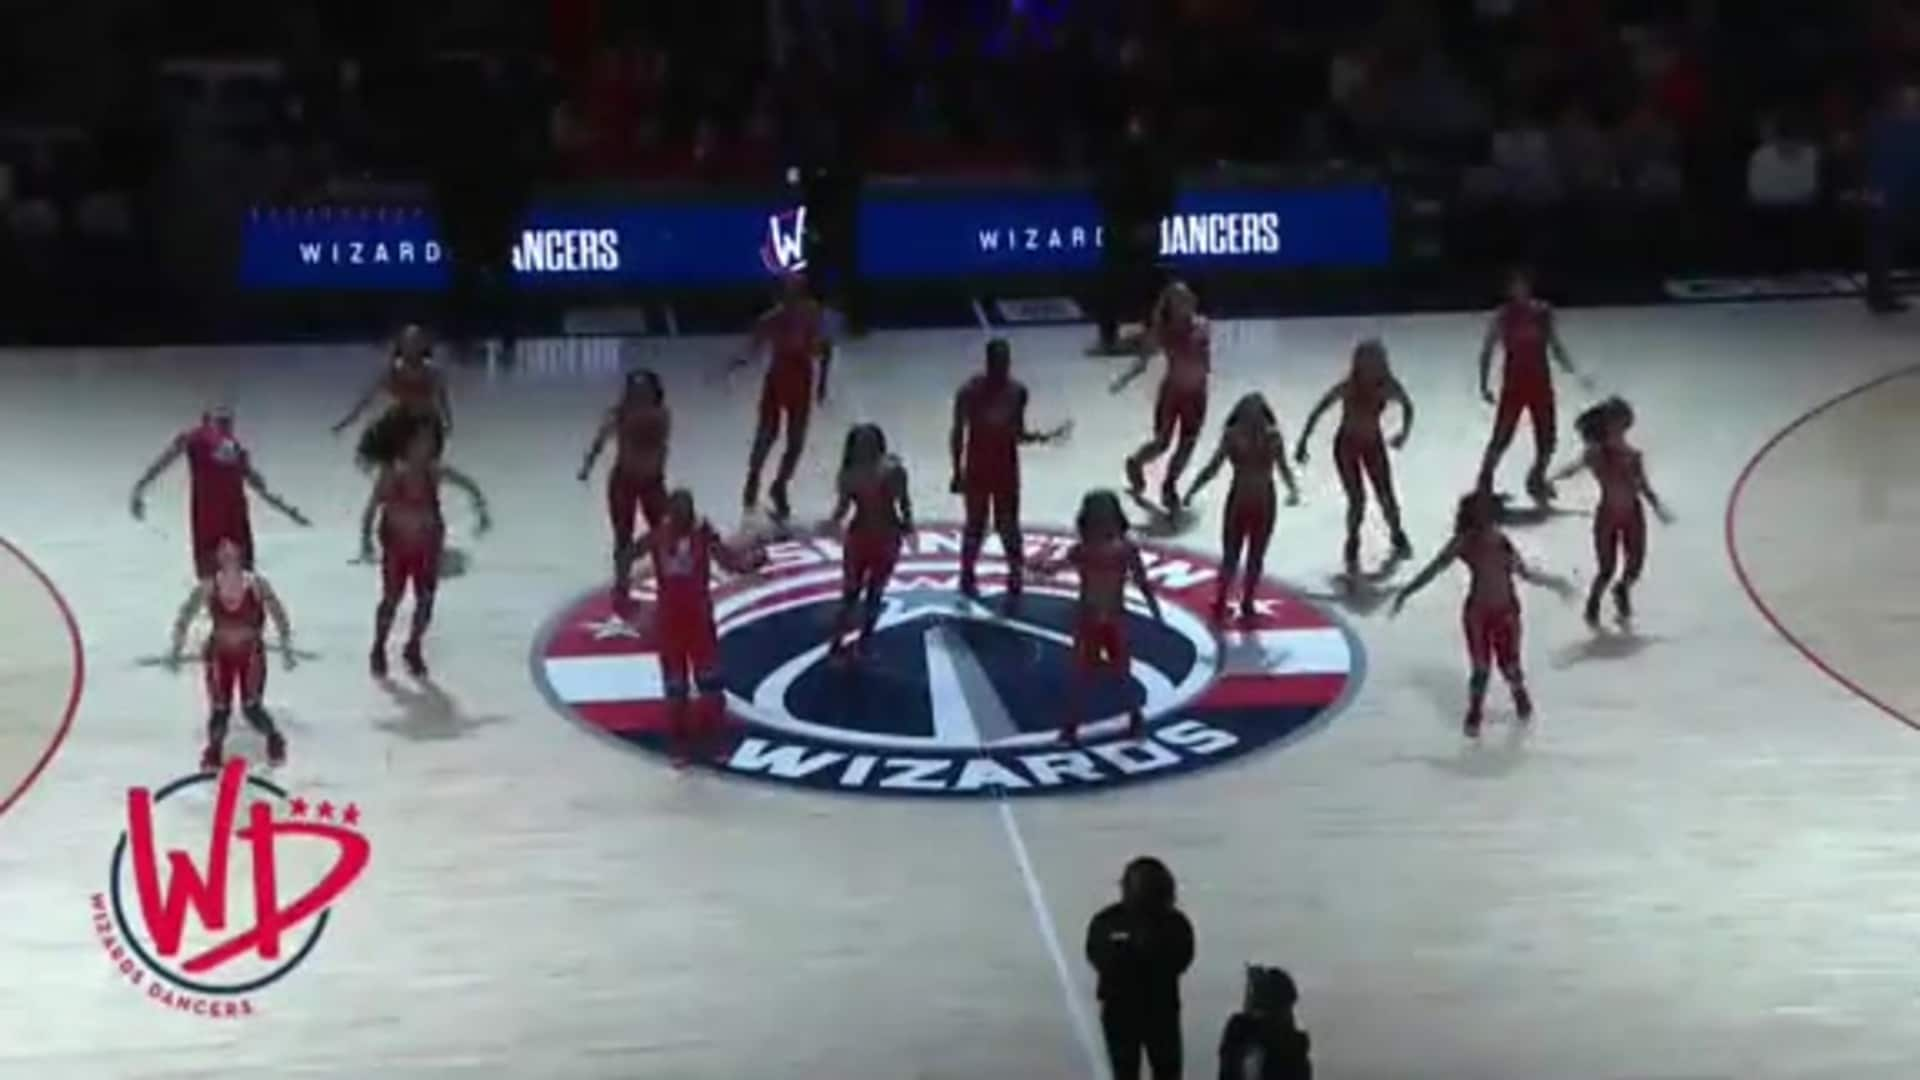 Wizards Dancers Q3 - 2/1/20